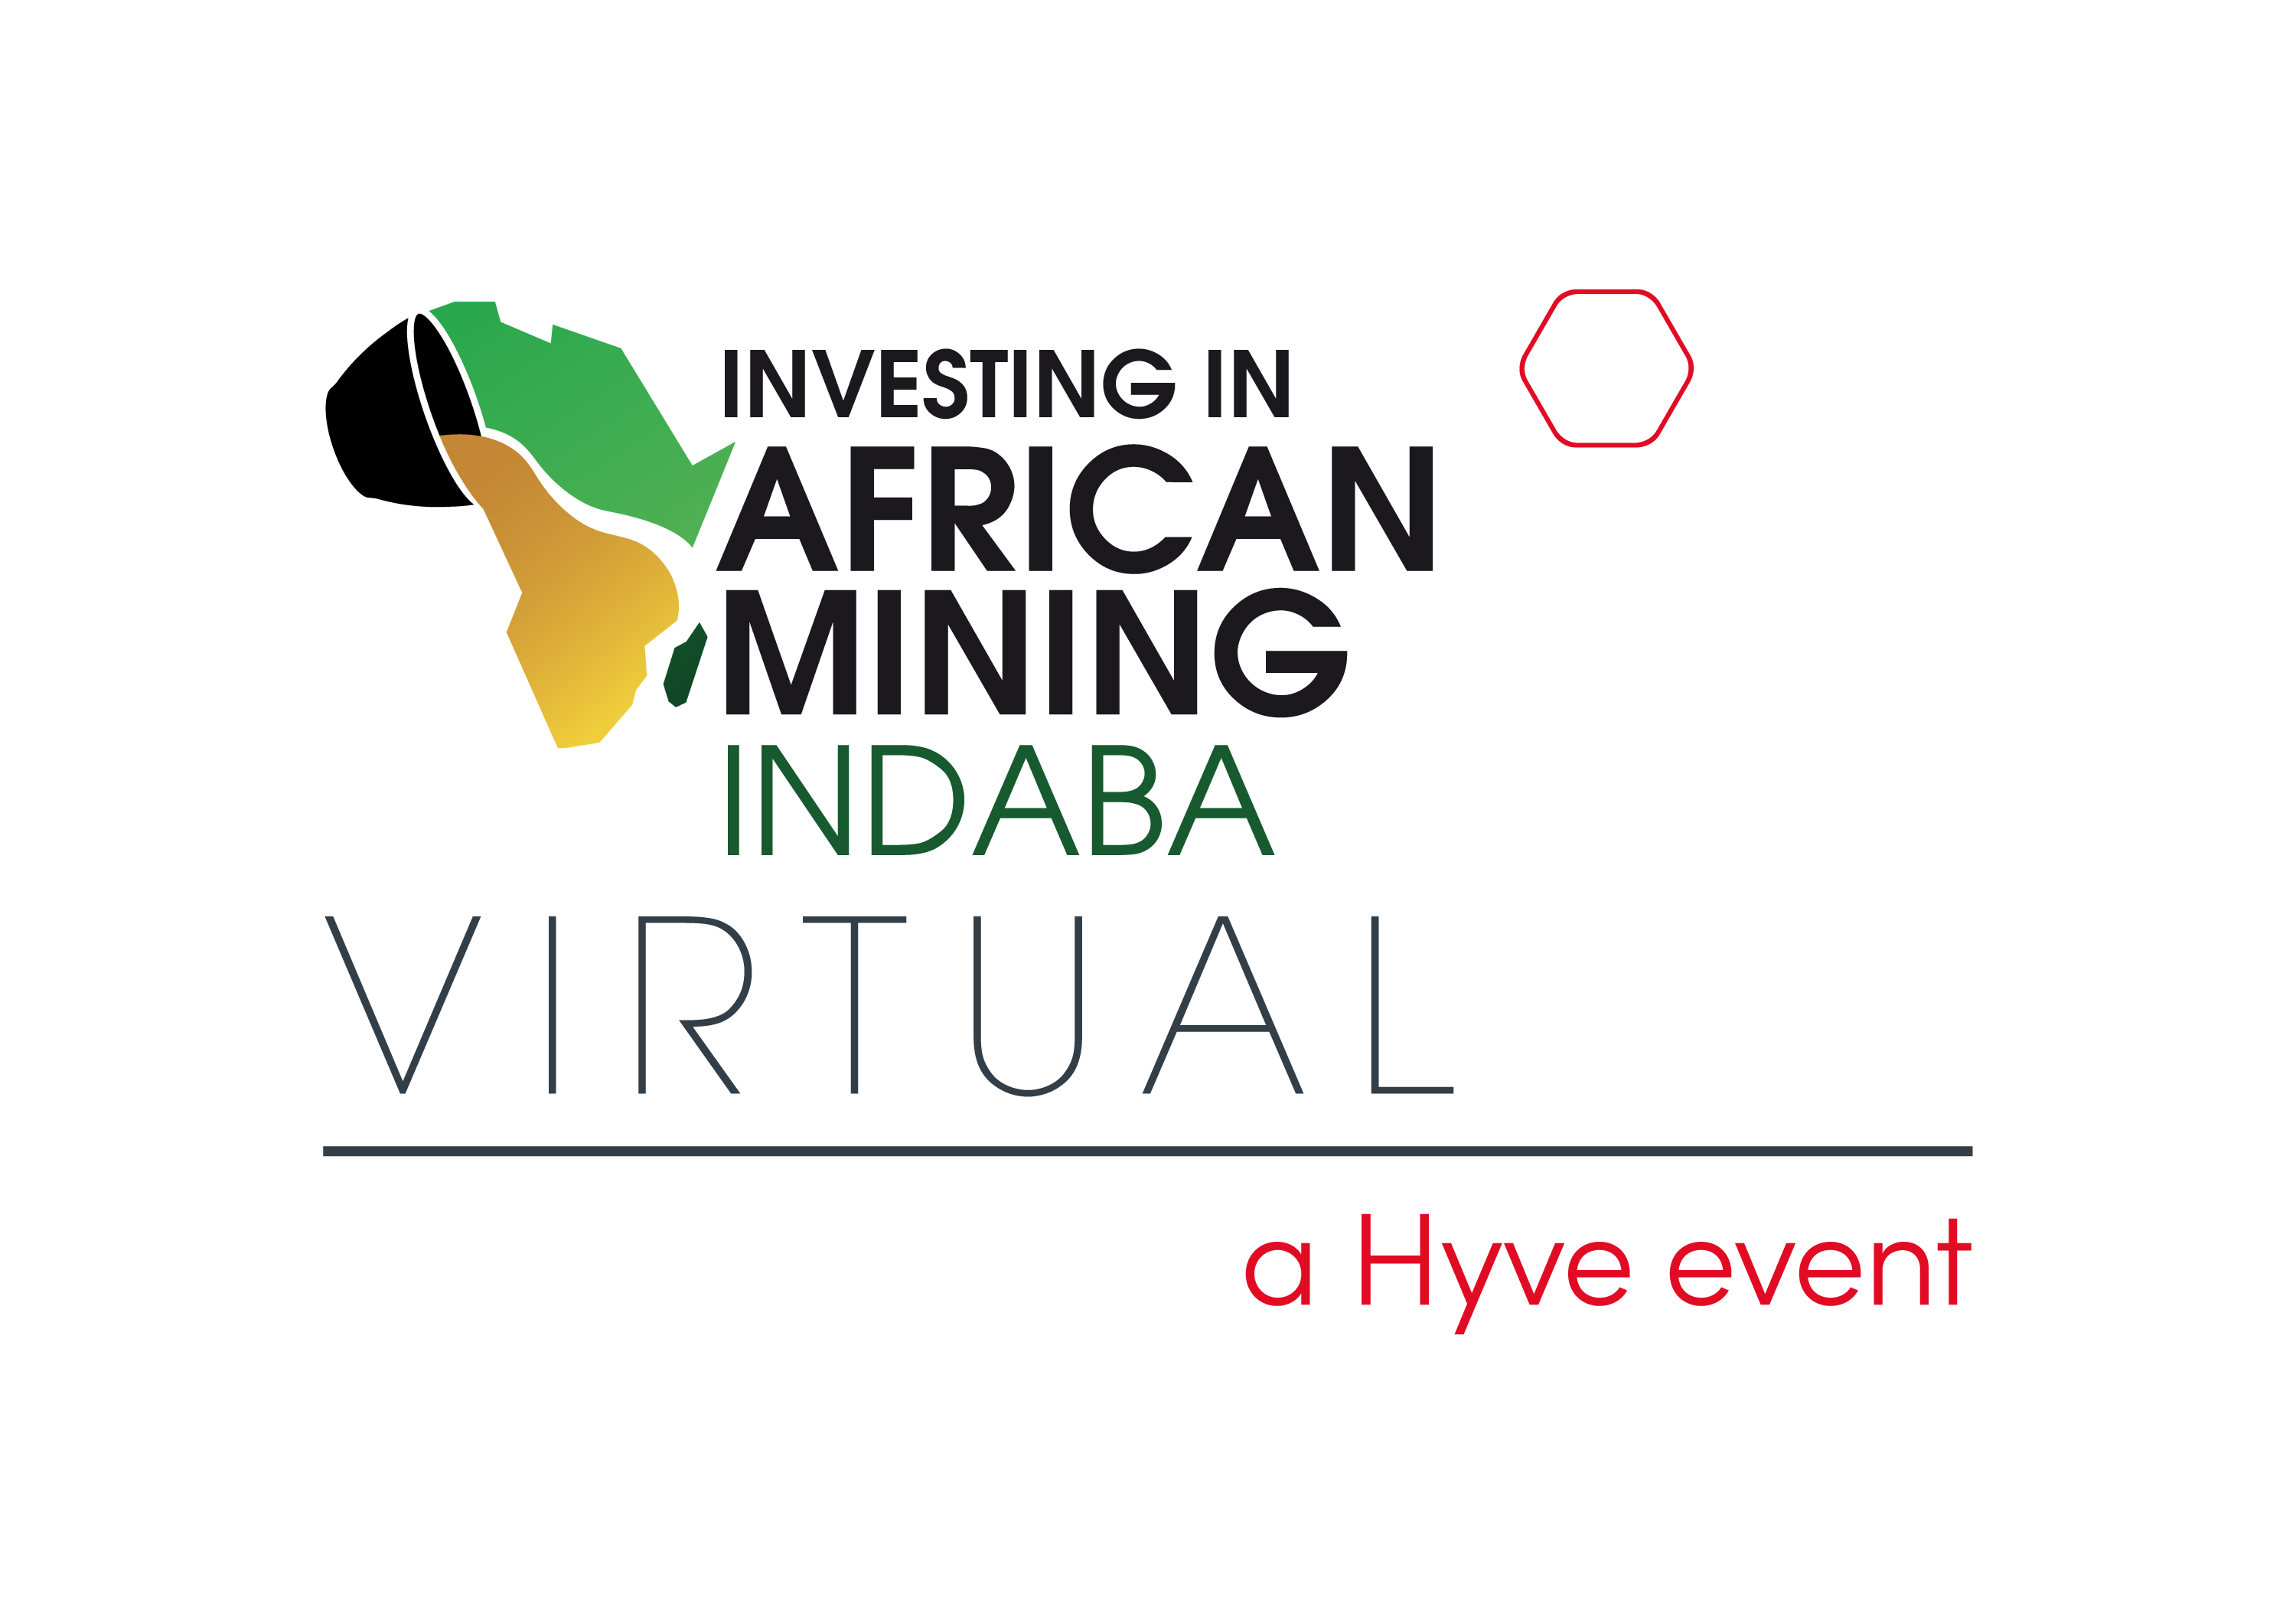 H.E. Cyril Ramaphosa, President of South Africa confirmed for Mining Indaba Virtual